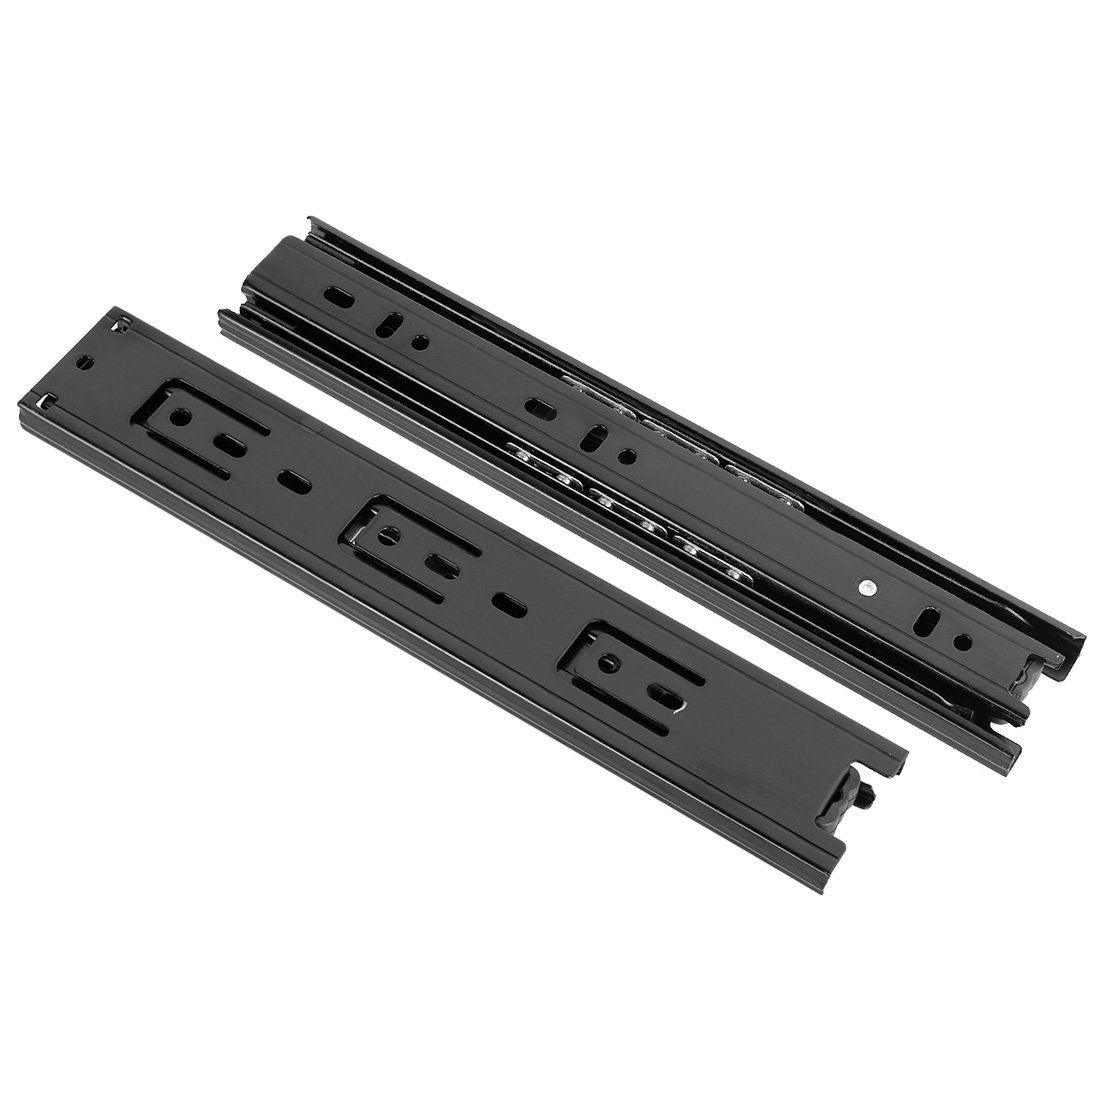 Full Extension,9-Inch,100lbs Capacity,40mm Wide Black 1 Pair a18031300ux0178 uxcell Ball Bearing Side Mount Drawer Slides